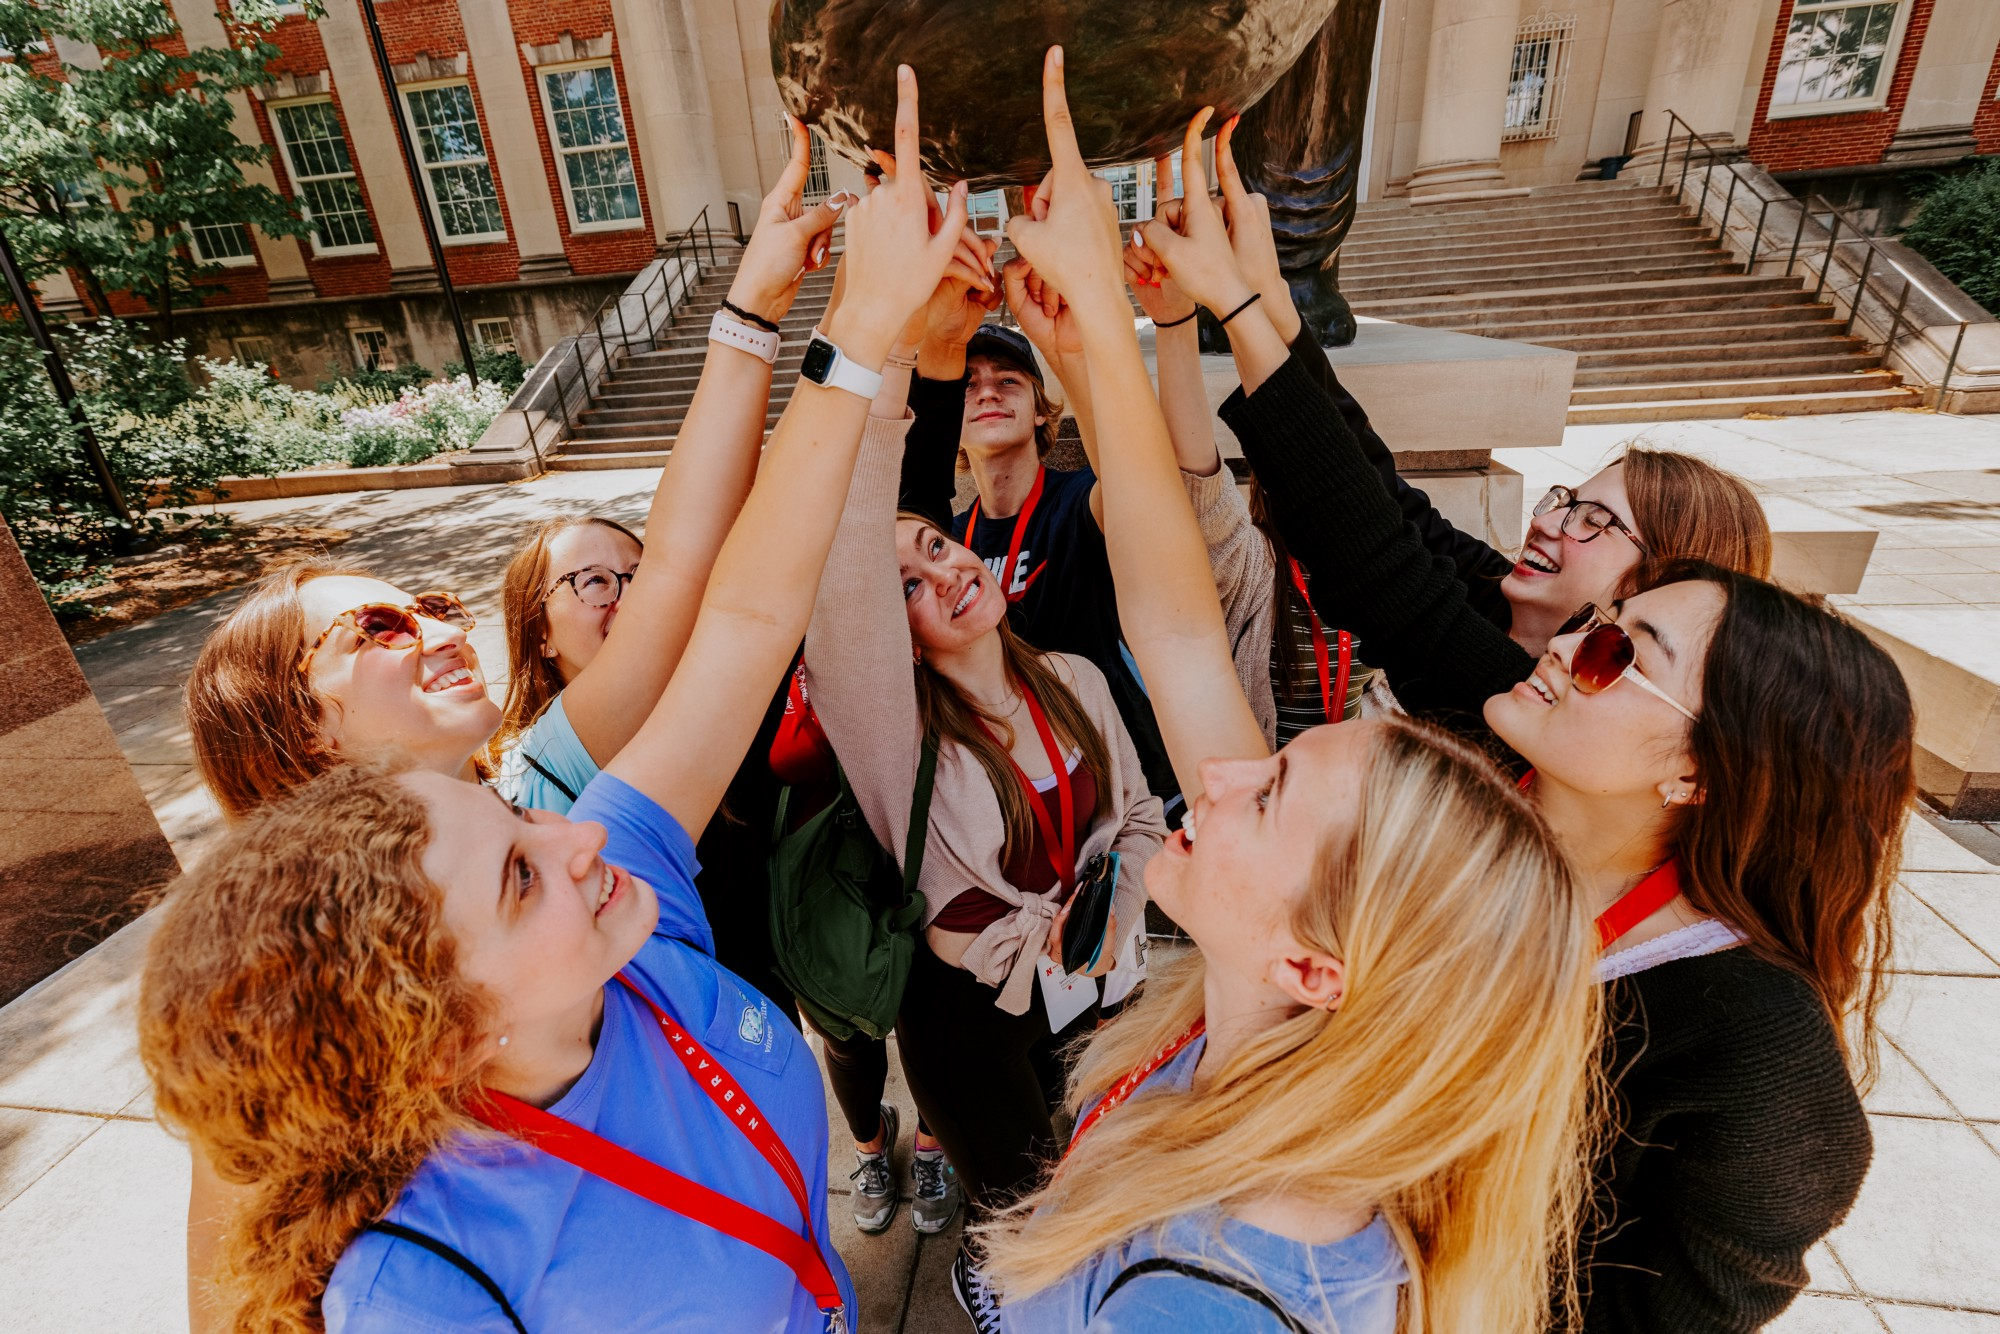 A group of new Huskers touches Archie the mammoth's paw for good luck outside of Morrill Hall.